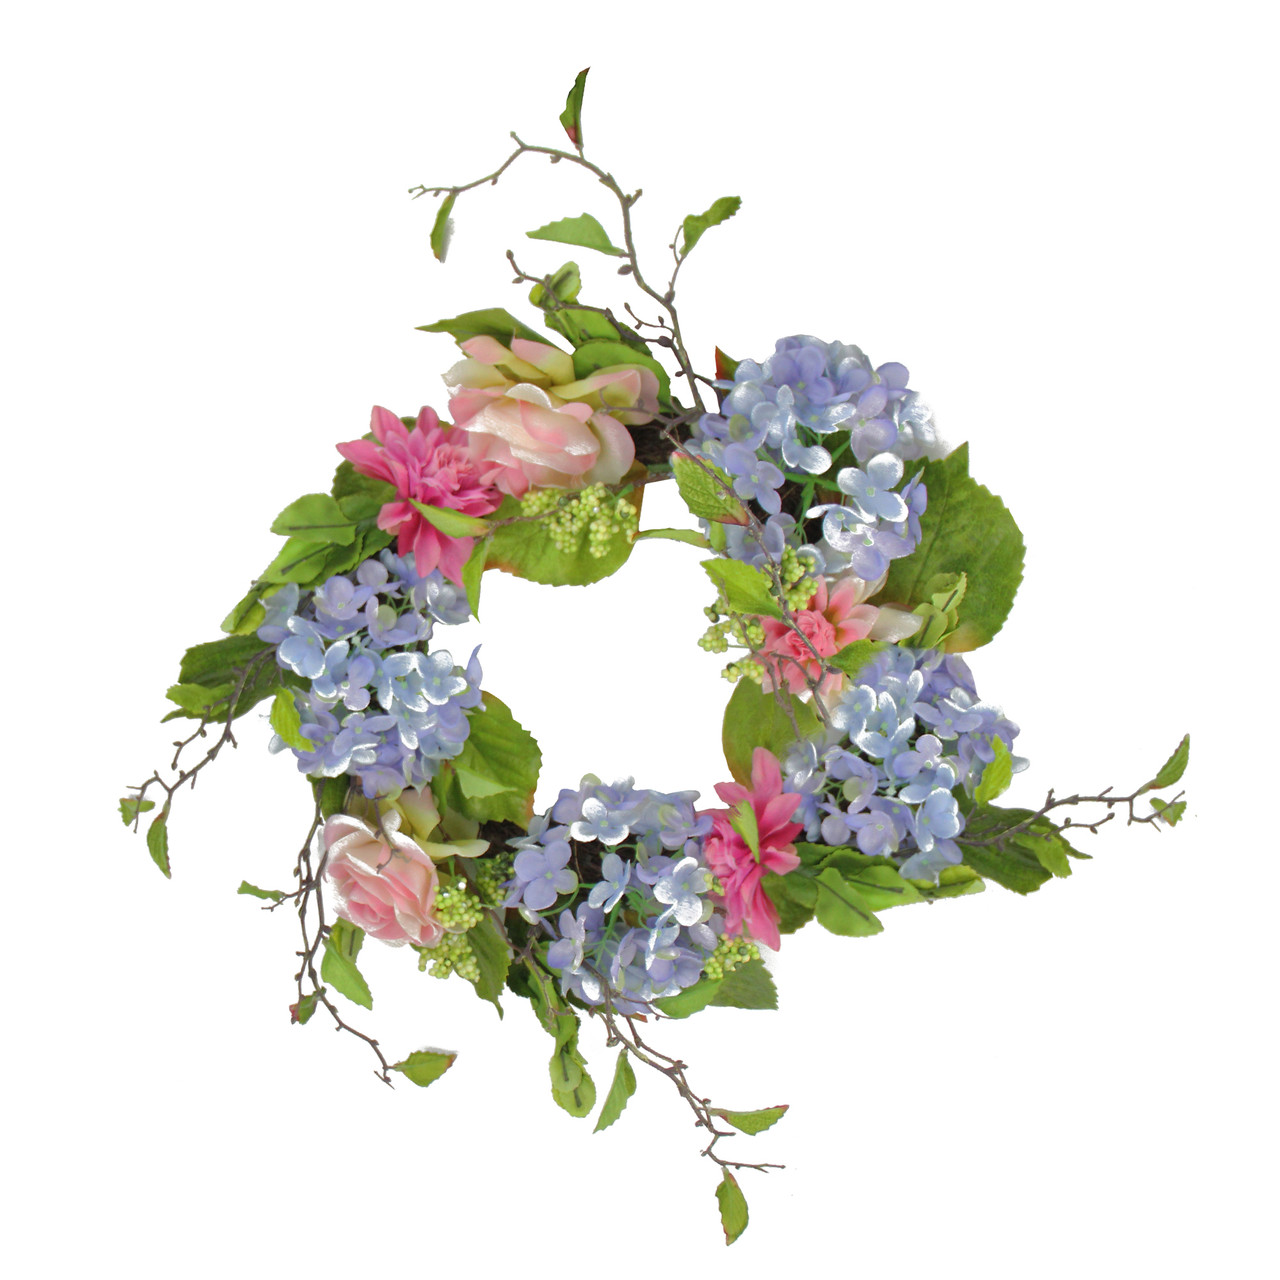 20 blue pink rose hydrangea floral wreath unlit christmas 20 blue and pink rose and hydrangea floral wreath unlit 32013077 izmirmasajfo